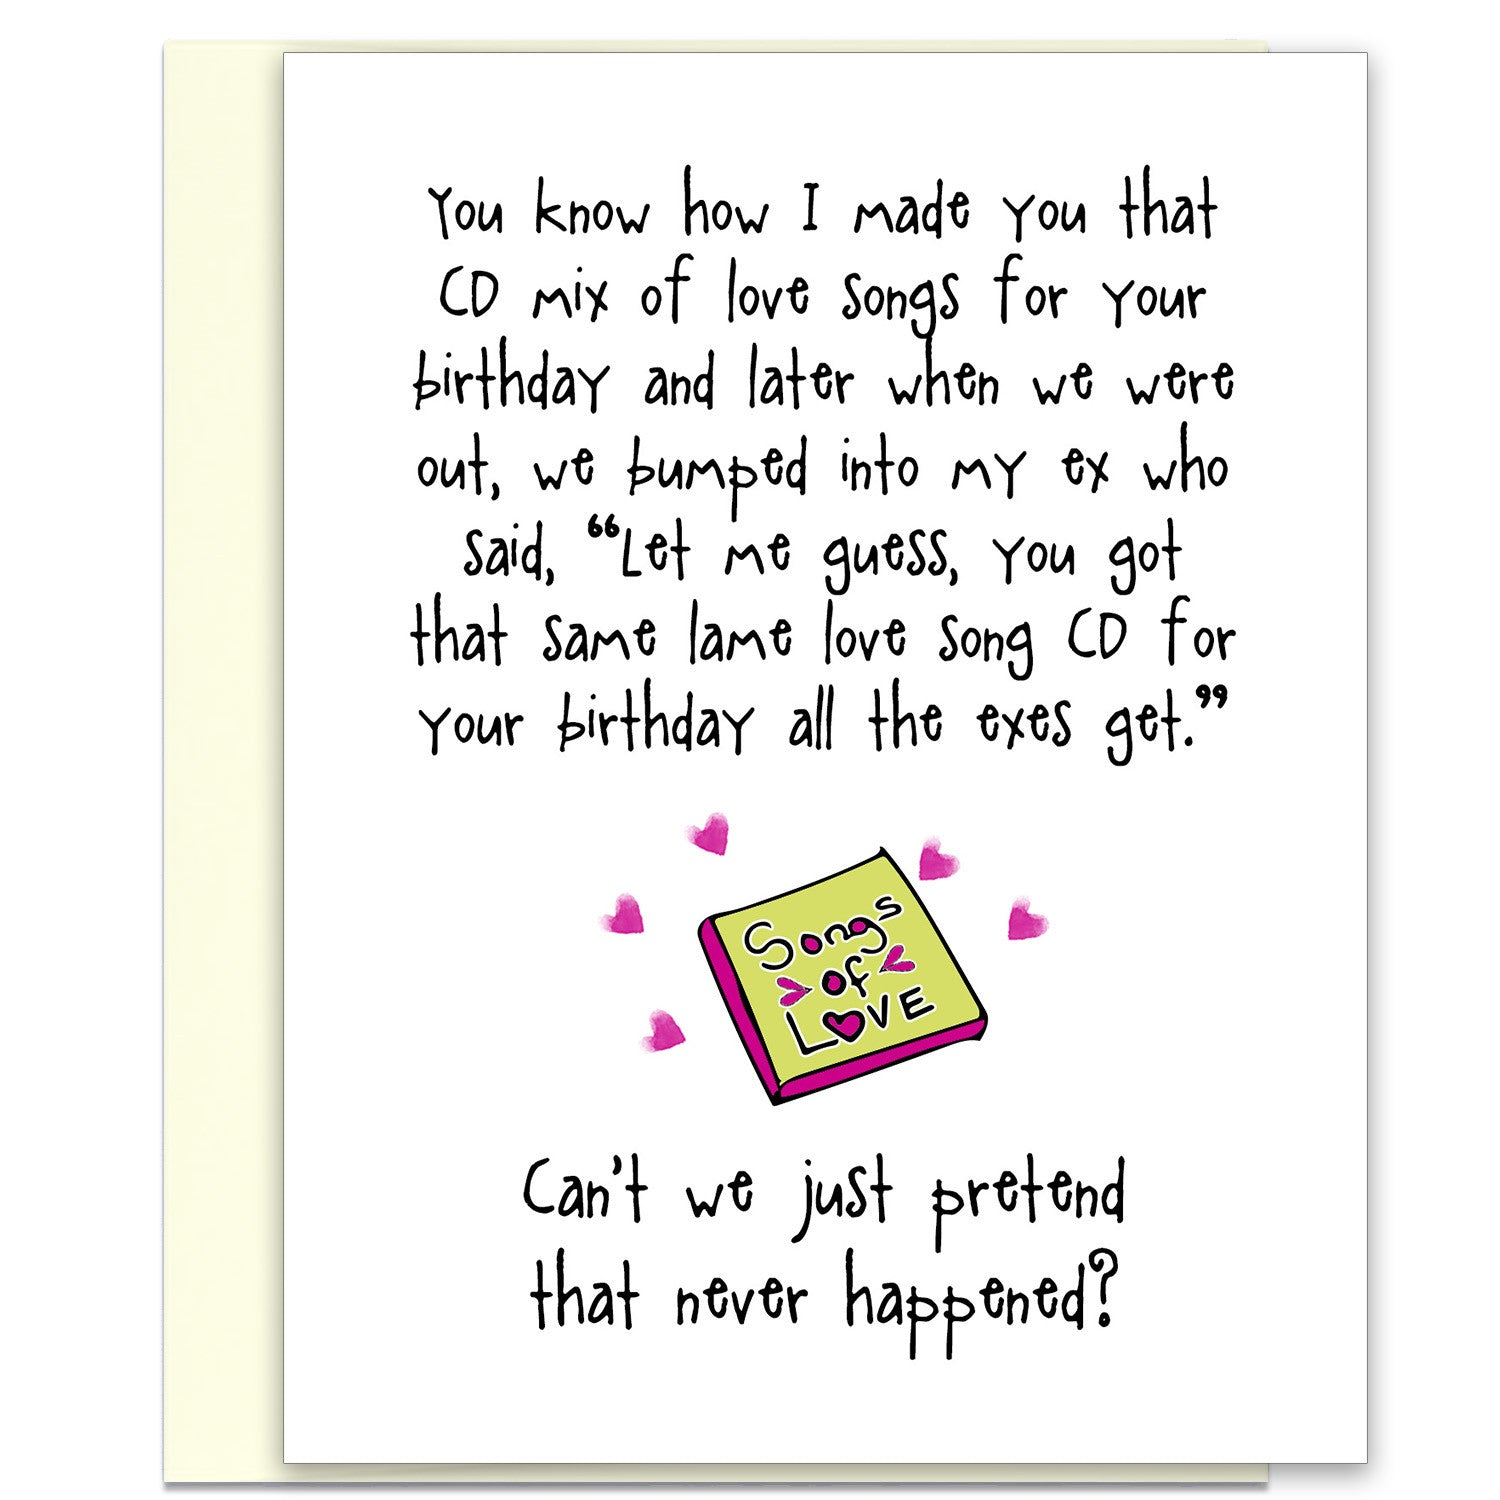 That Love Song CD - A Break Up Greeting Card